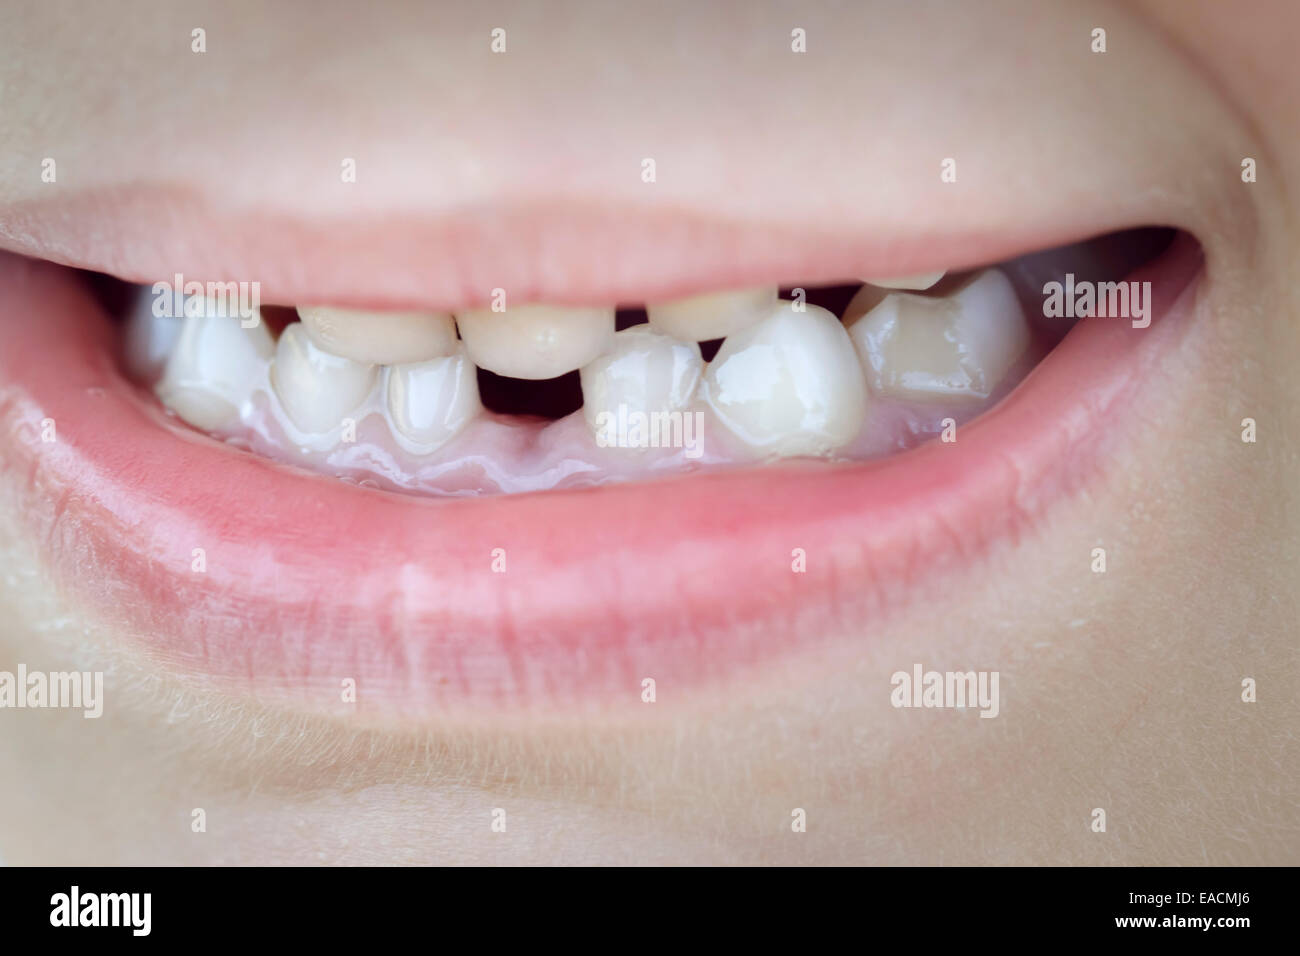 tooth missing child mouth caucasian 6 years boy - Stock Image